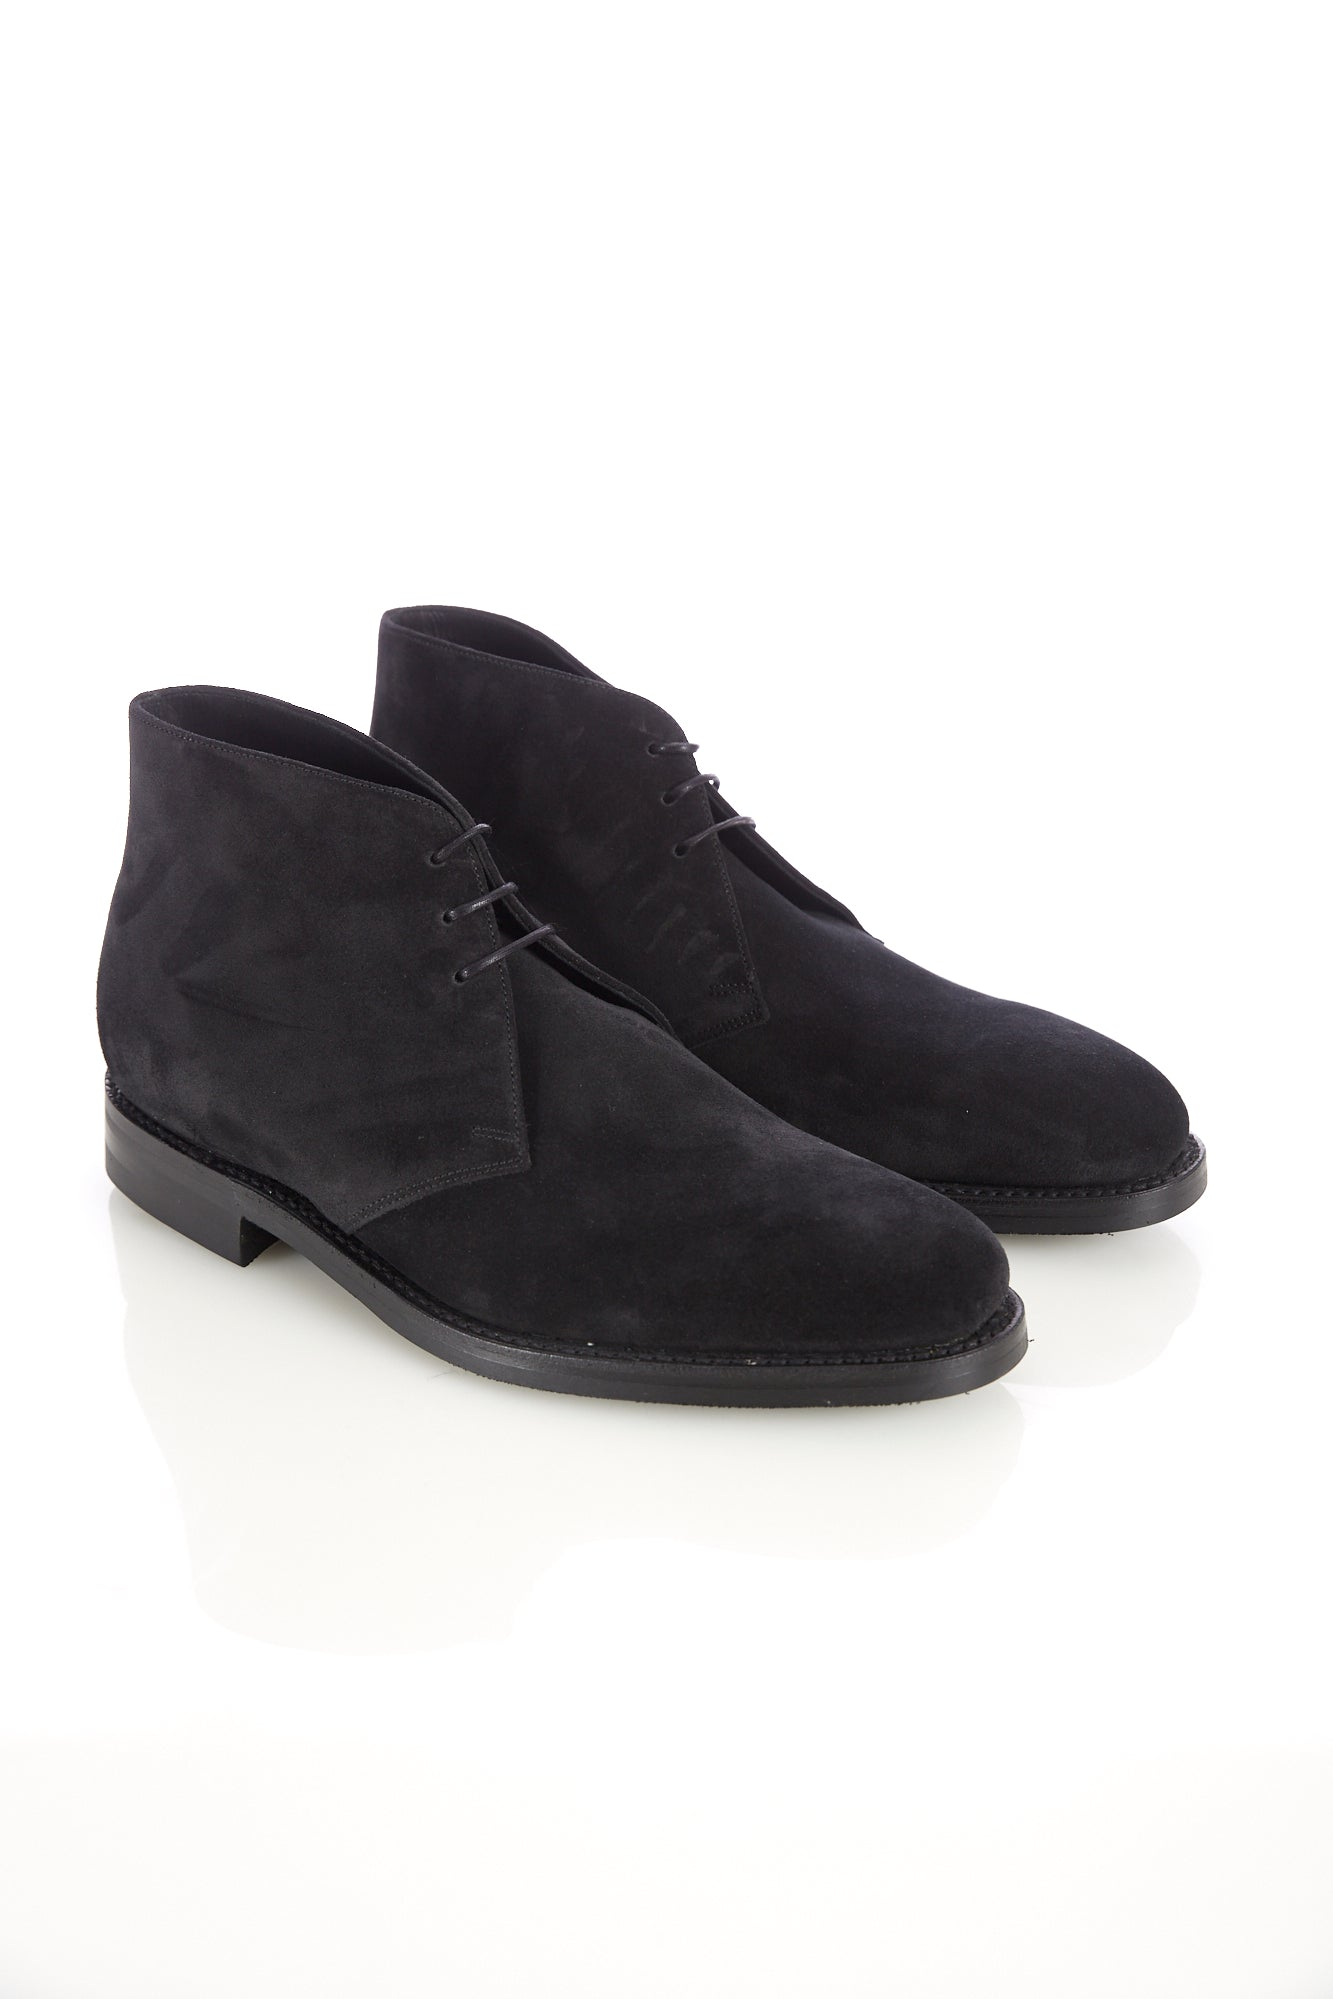 Loake 1880 Pimlico Black Suede Chukka Boot - Shoes - Loake - LALONDE's